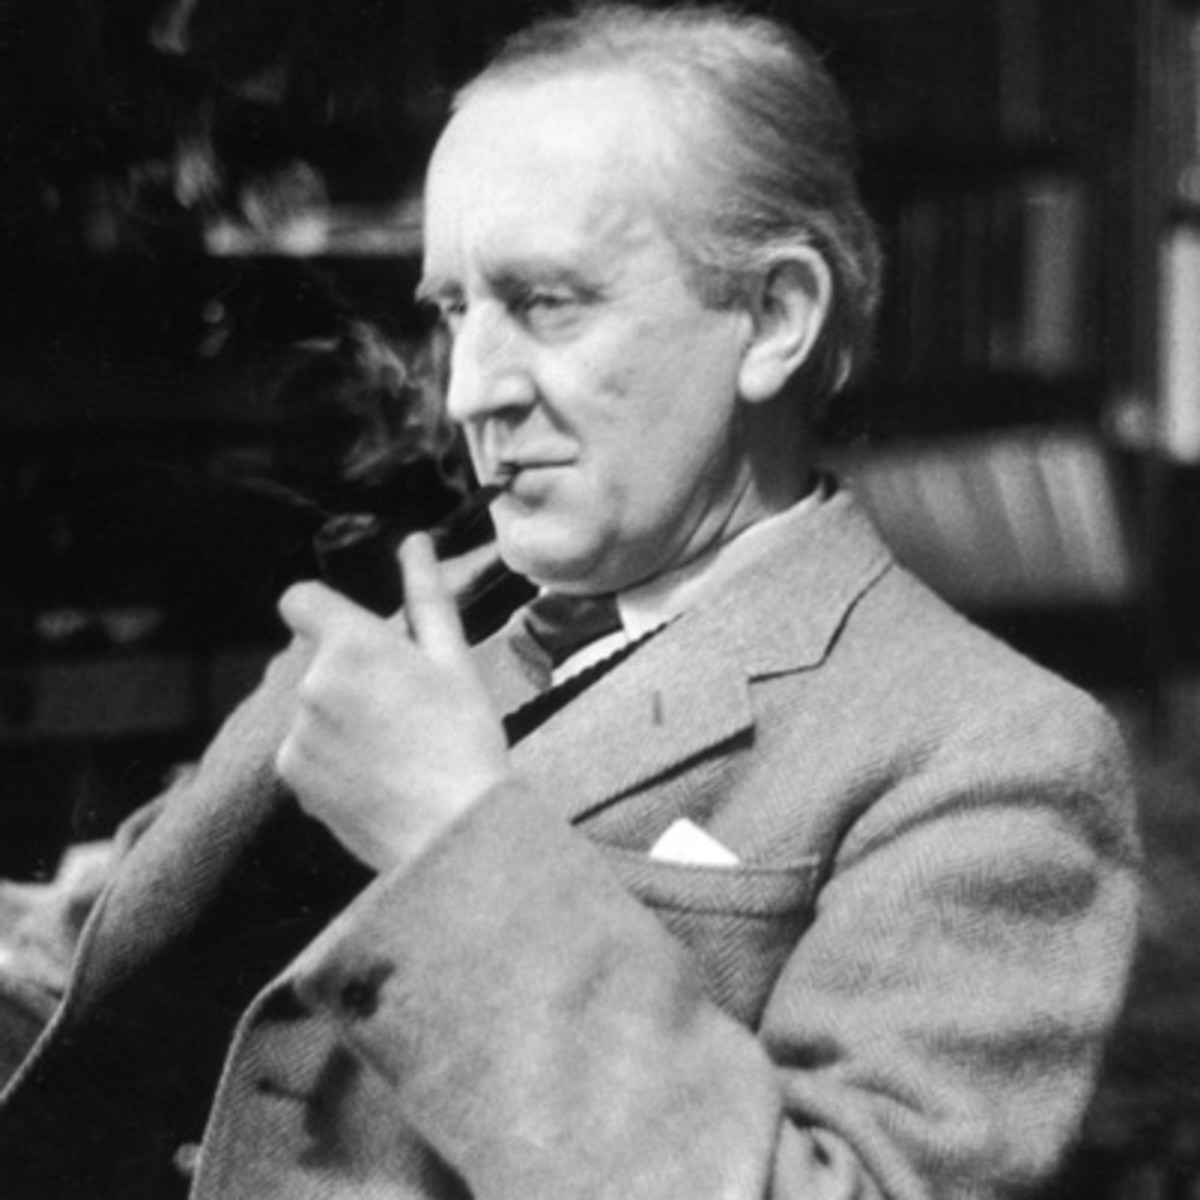 jrr tolkien essays jrr tolkien author linguist biographycom